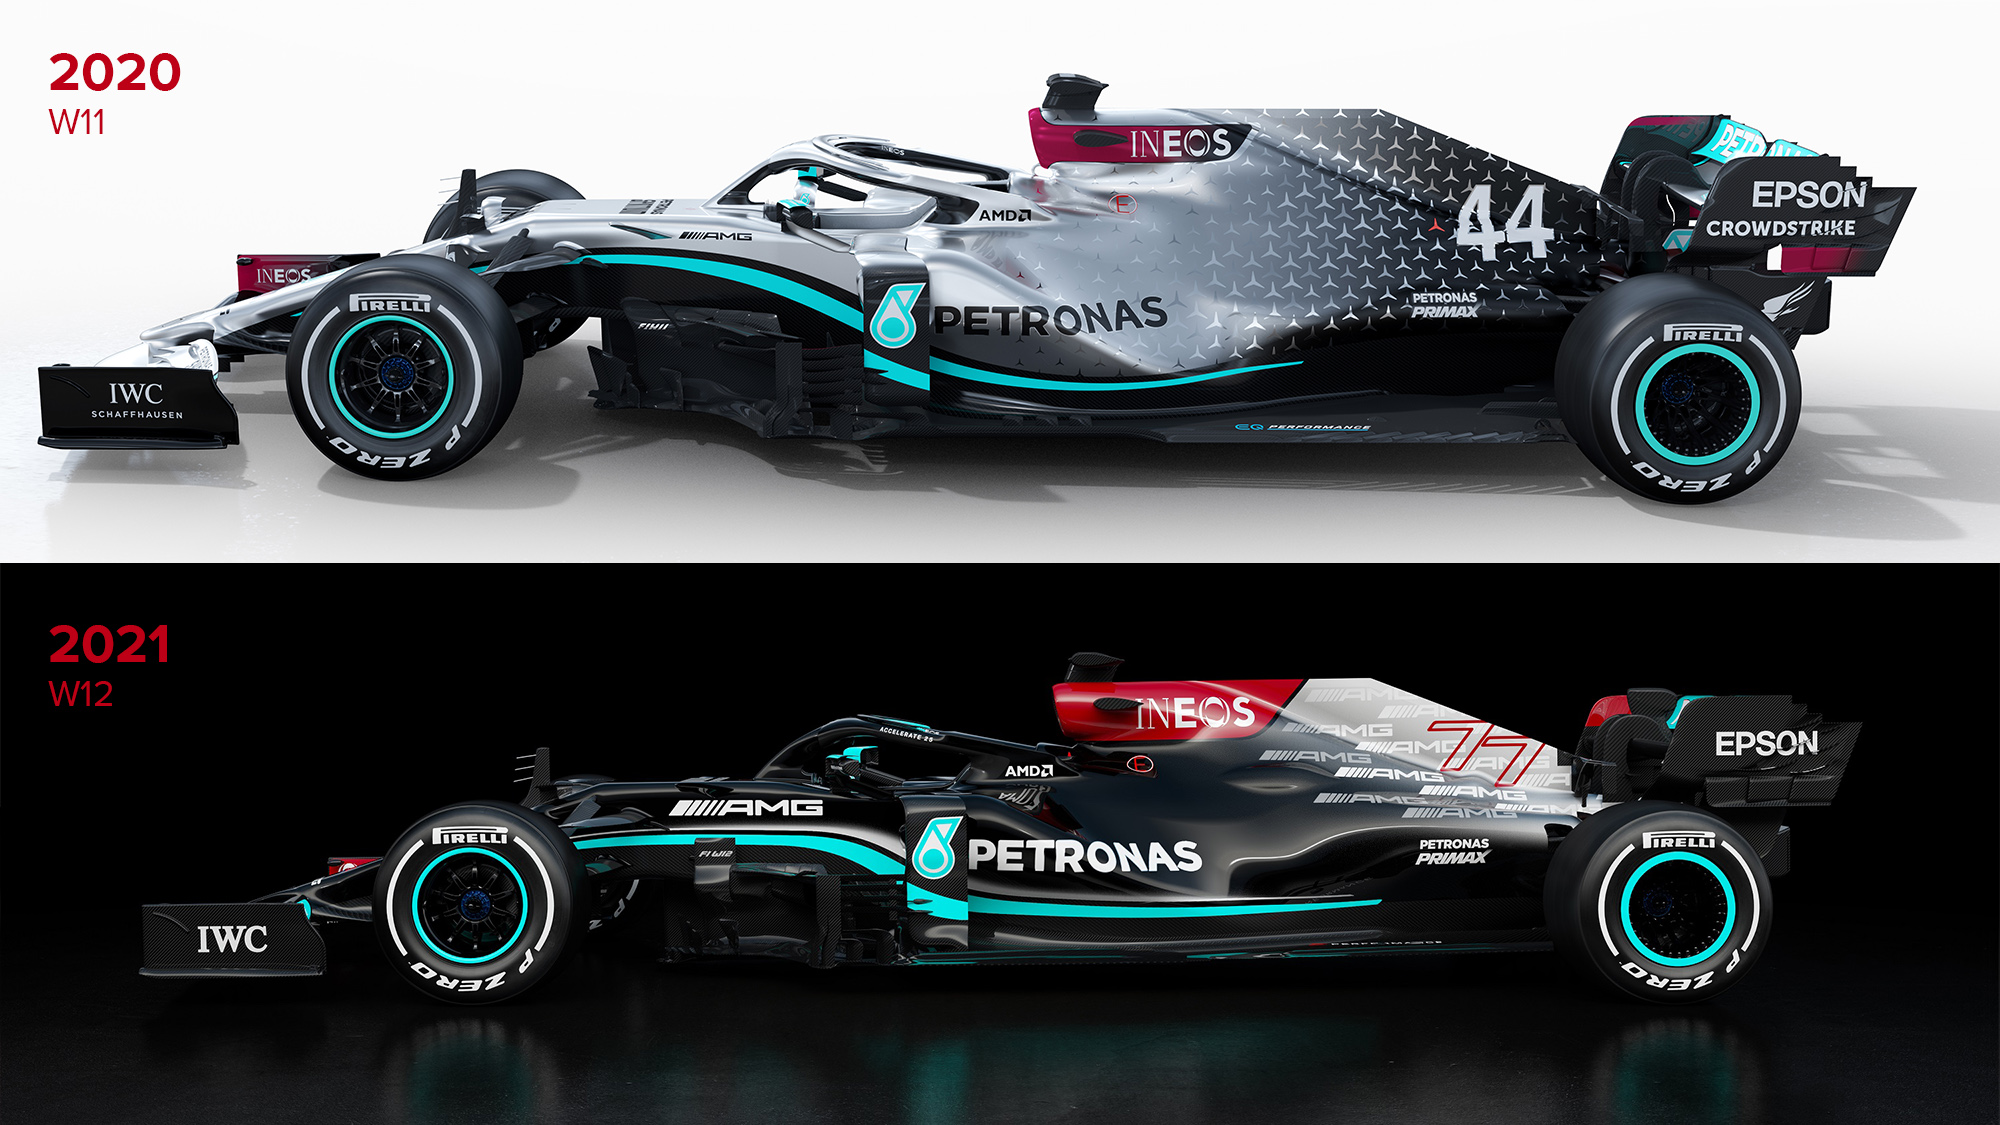 Mercedes W11 W12 side by side